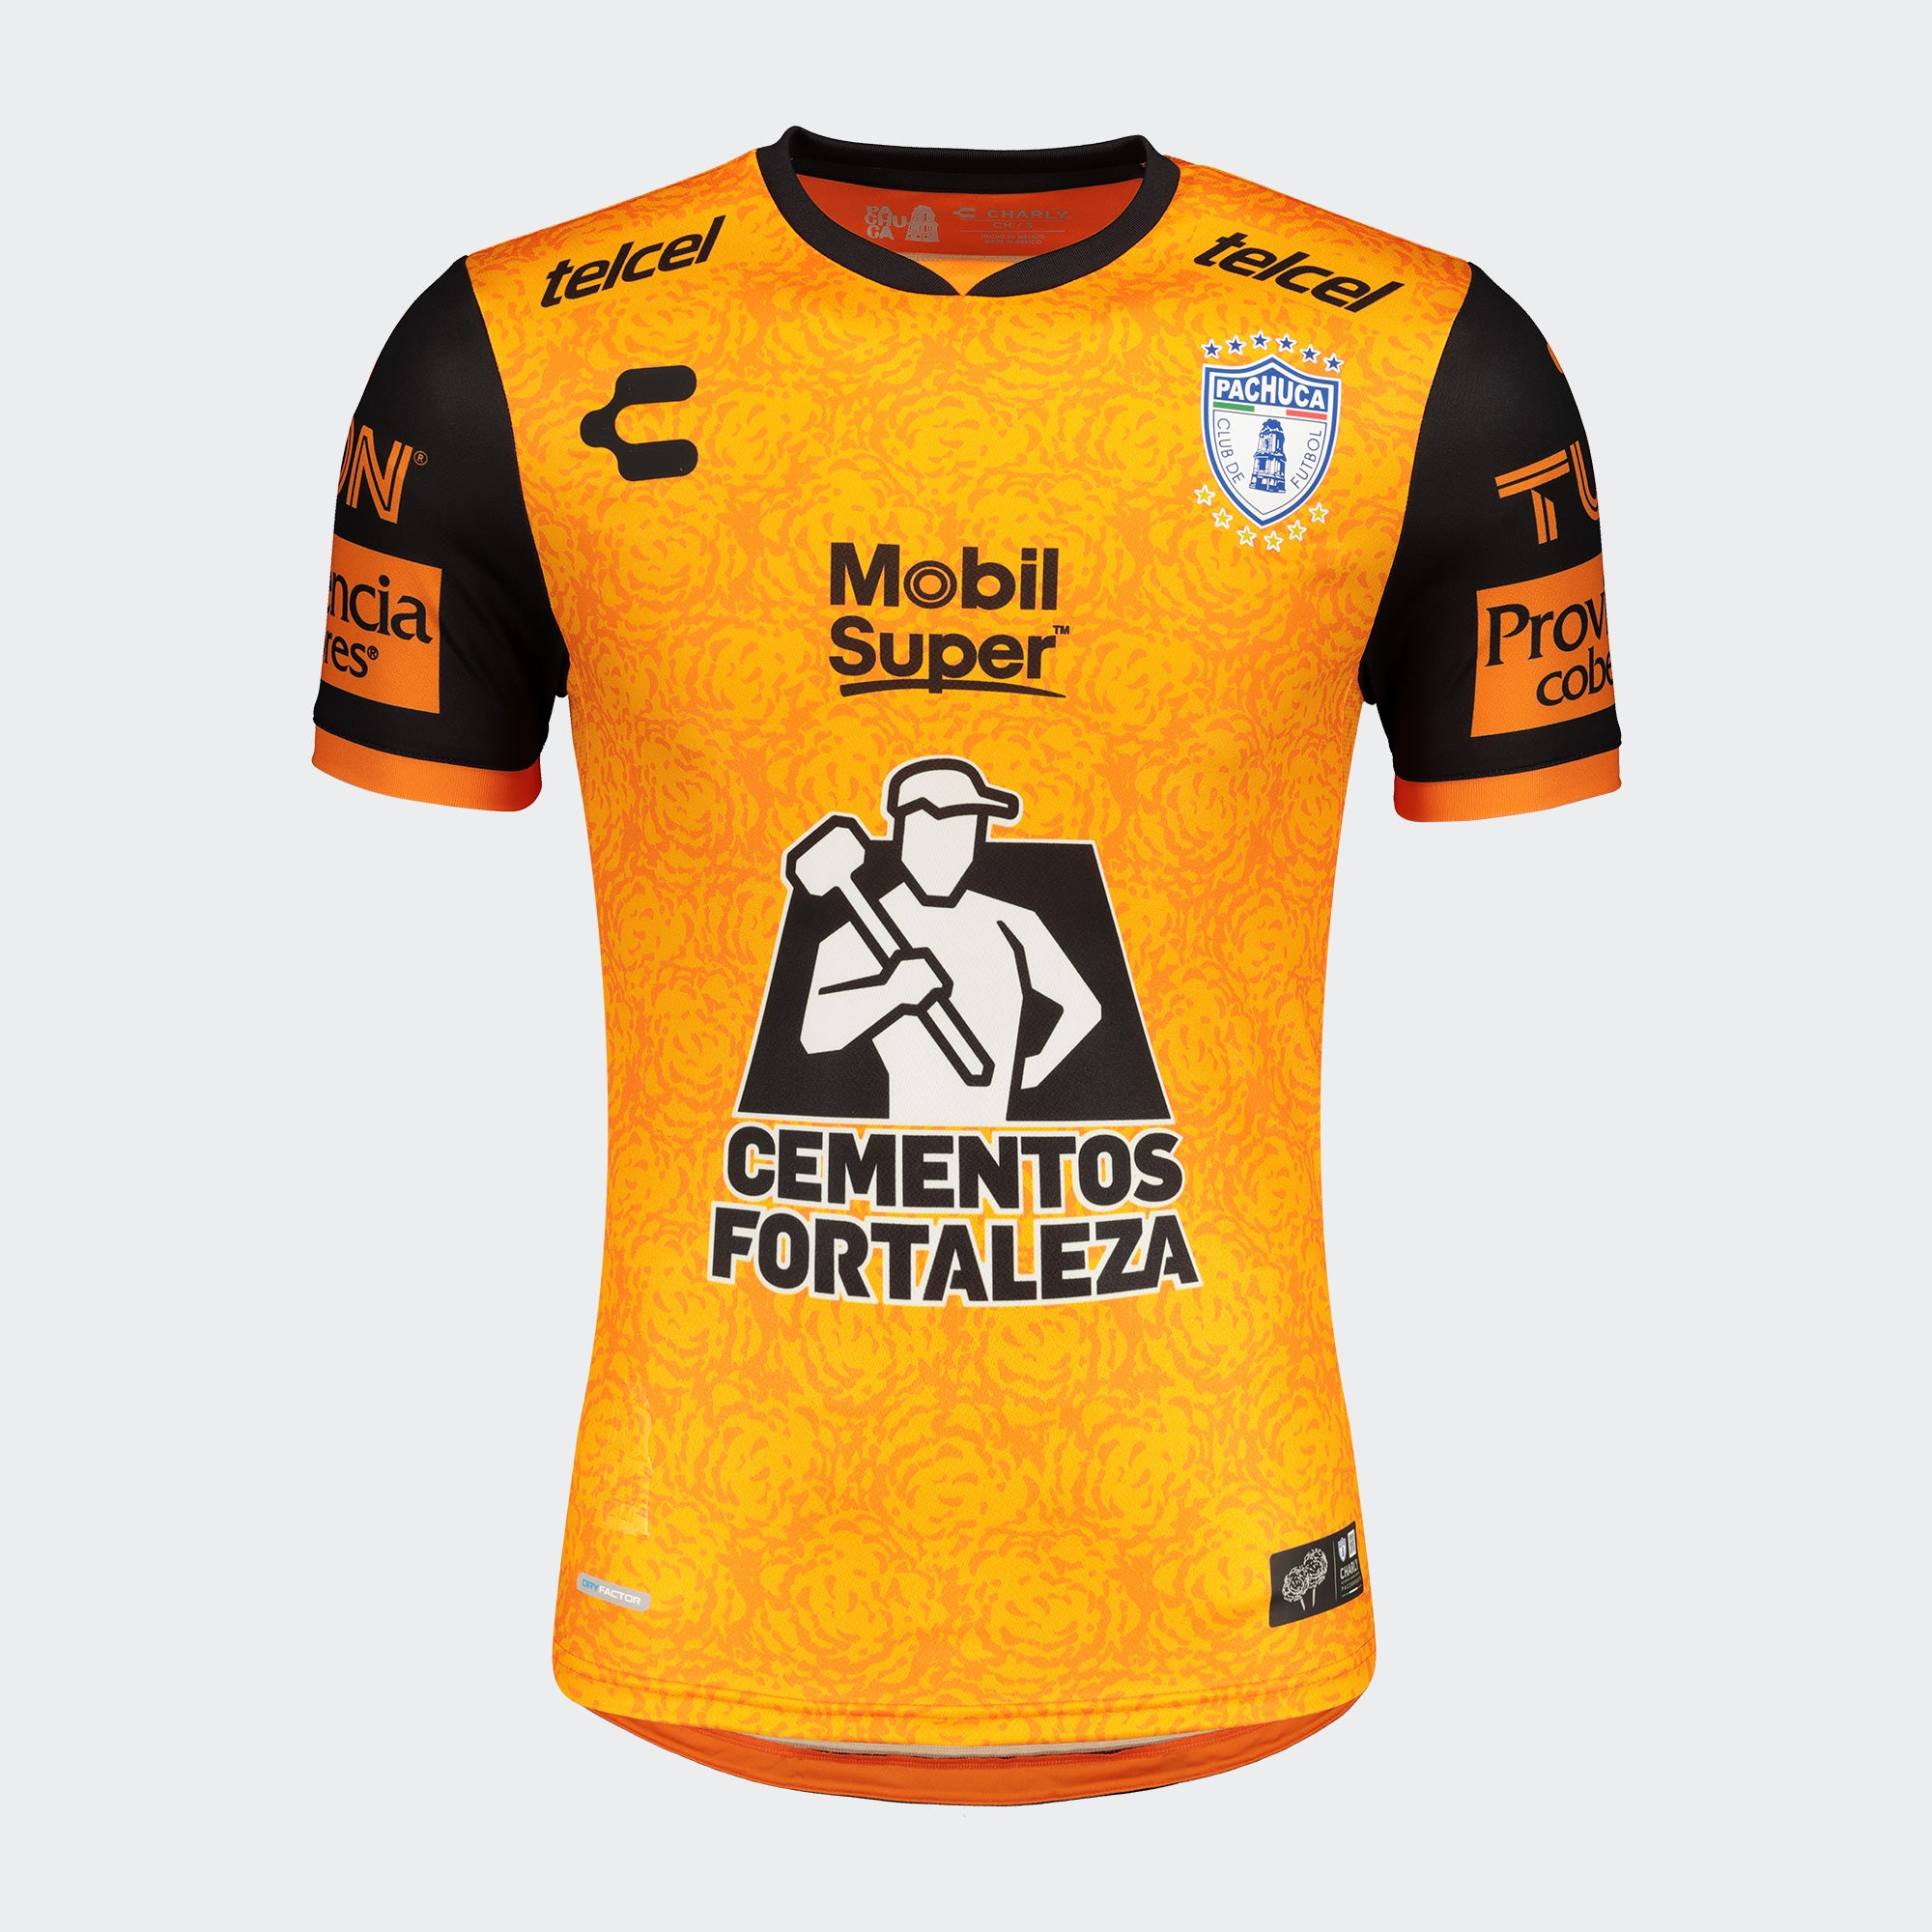 Pachuca Playera Dia De Muertos Hombre | Pachuca Day Of The Dead Jersey Men's